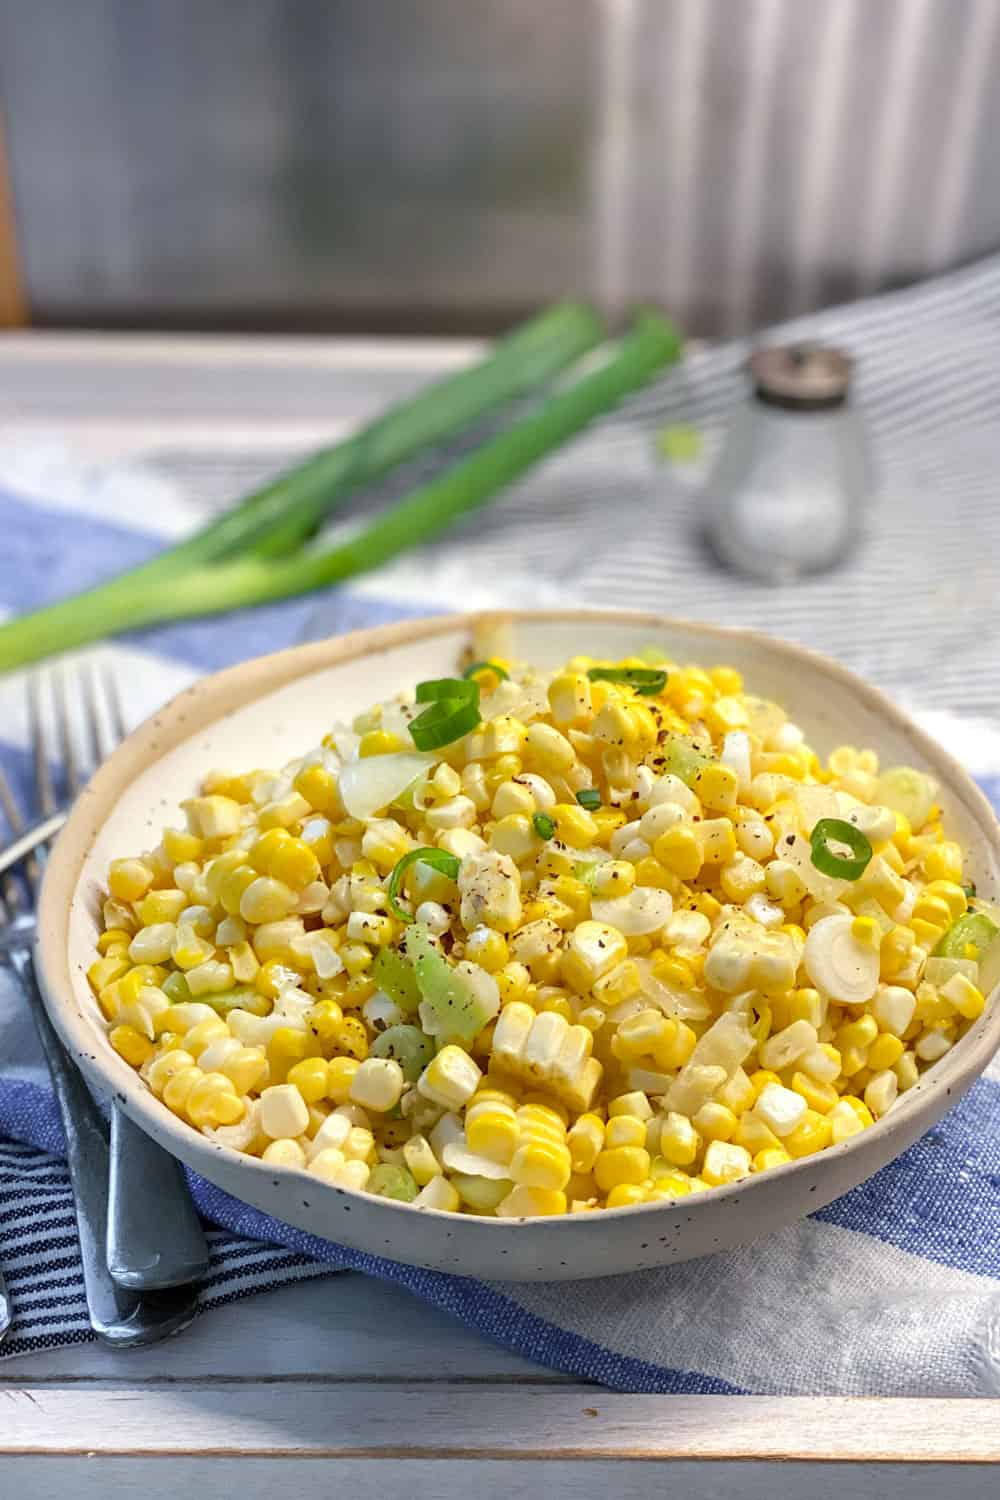 a white bowl filled with sautéed corn kernels and chopped scallions, in the background is a whole scallion and a small glass salt shaker.